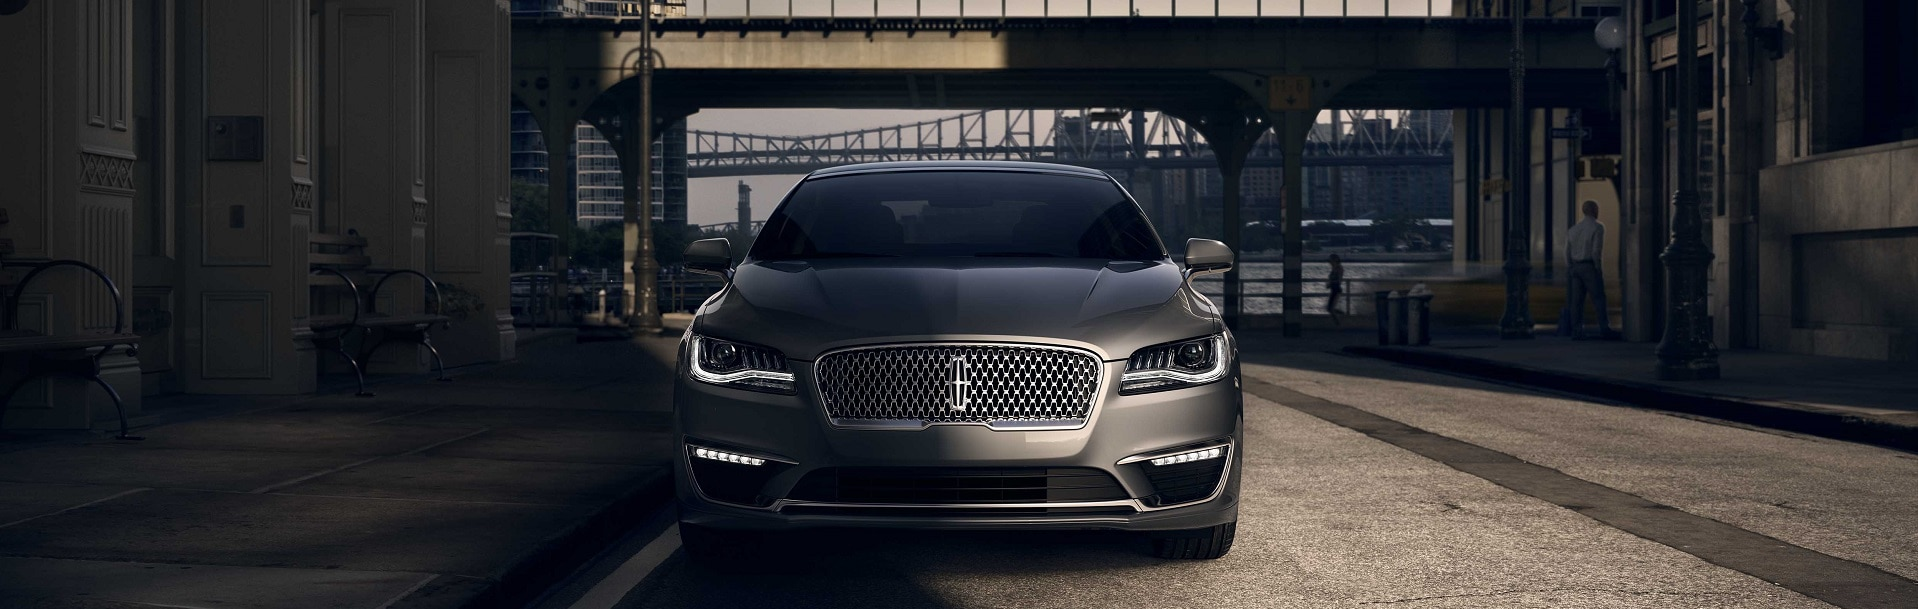 2017 Lincoln MKZ Cleveland